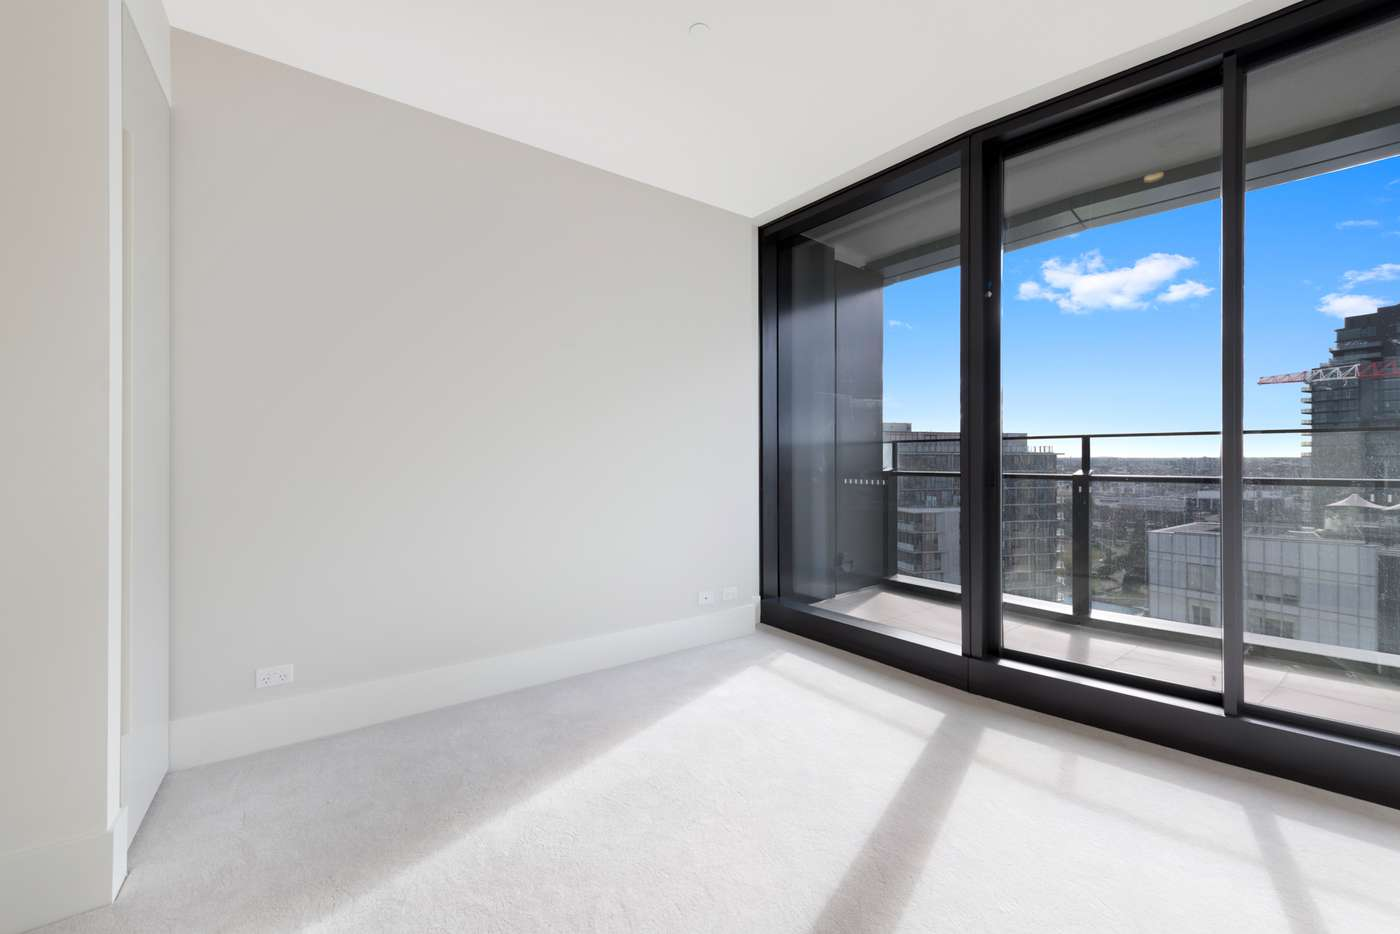 Fifth view of Homely apartment listing, 1603/1603/1 ALMEIDA CRESCENT, South Yarra VIC 3141